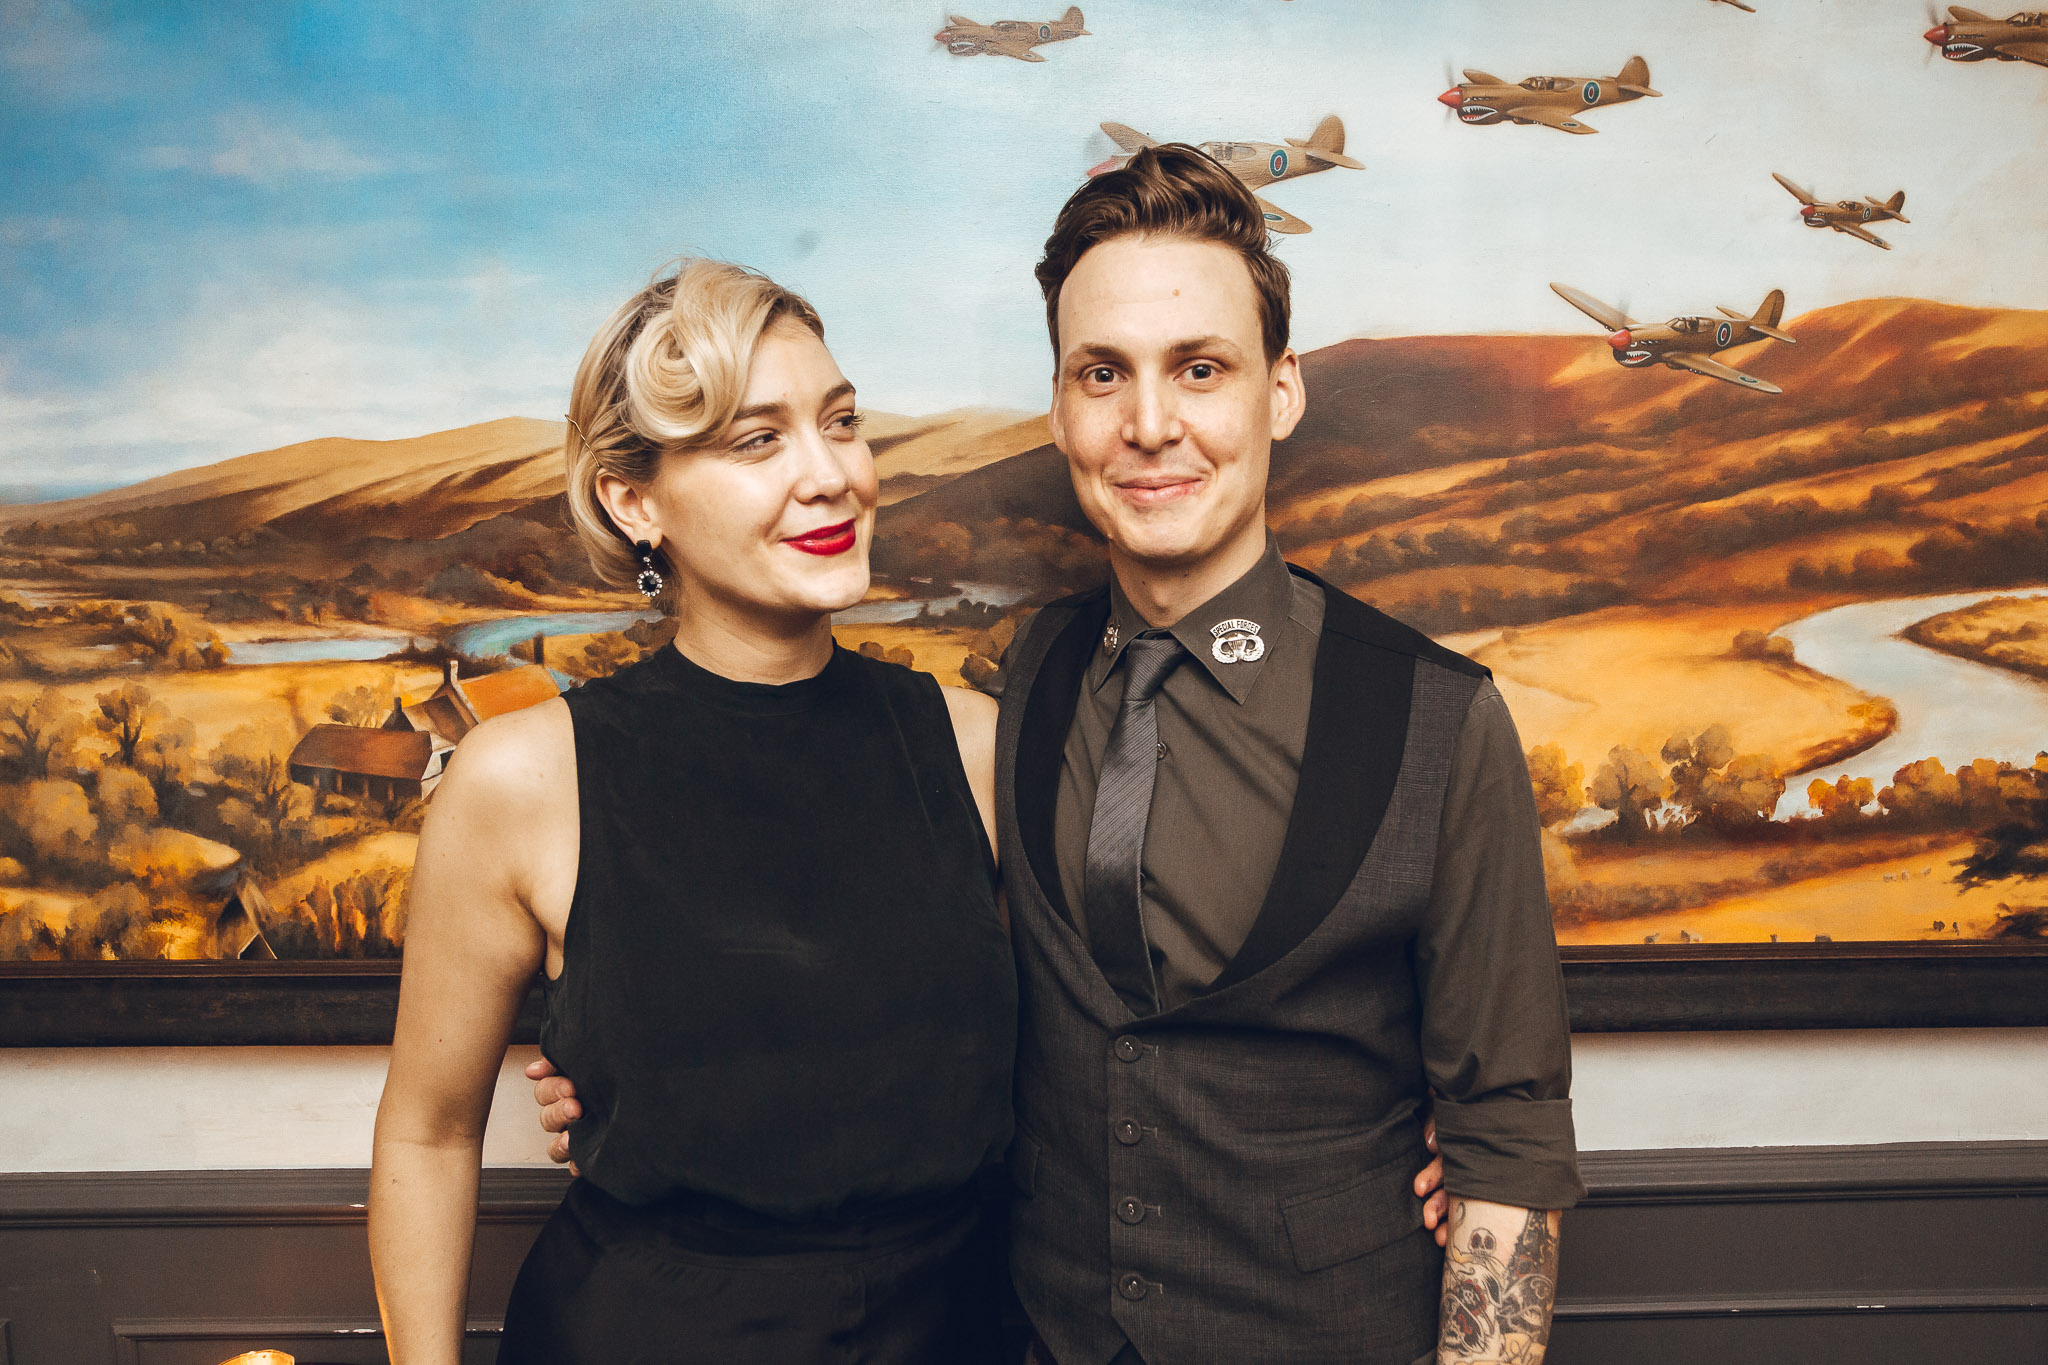 Paige Aubort, with Kittyhawk owner and mentor, Jared Merlino